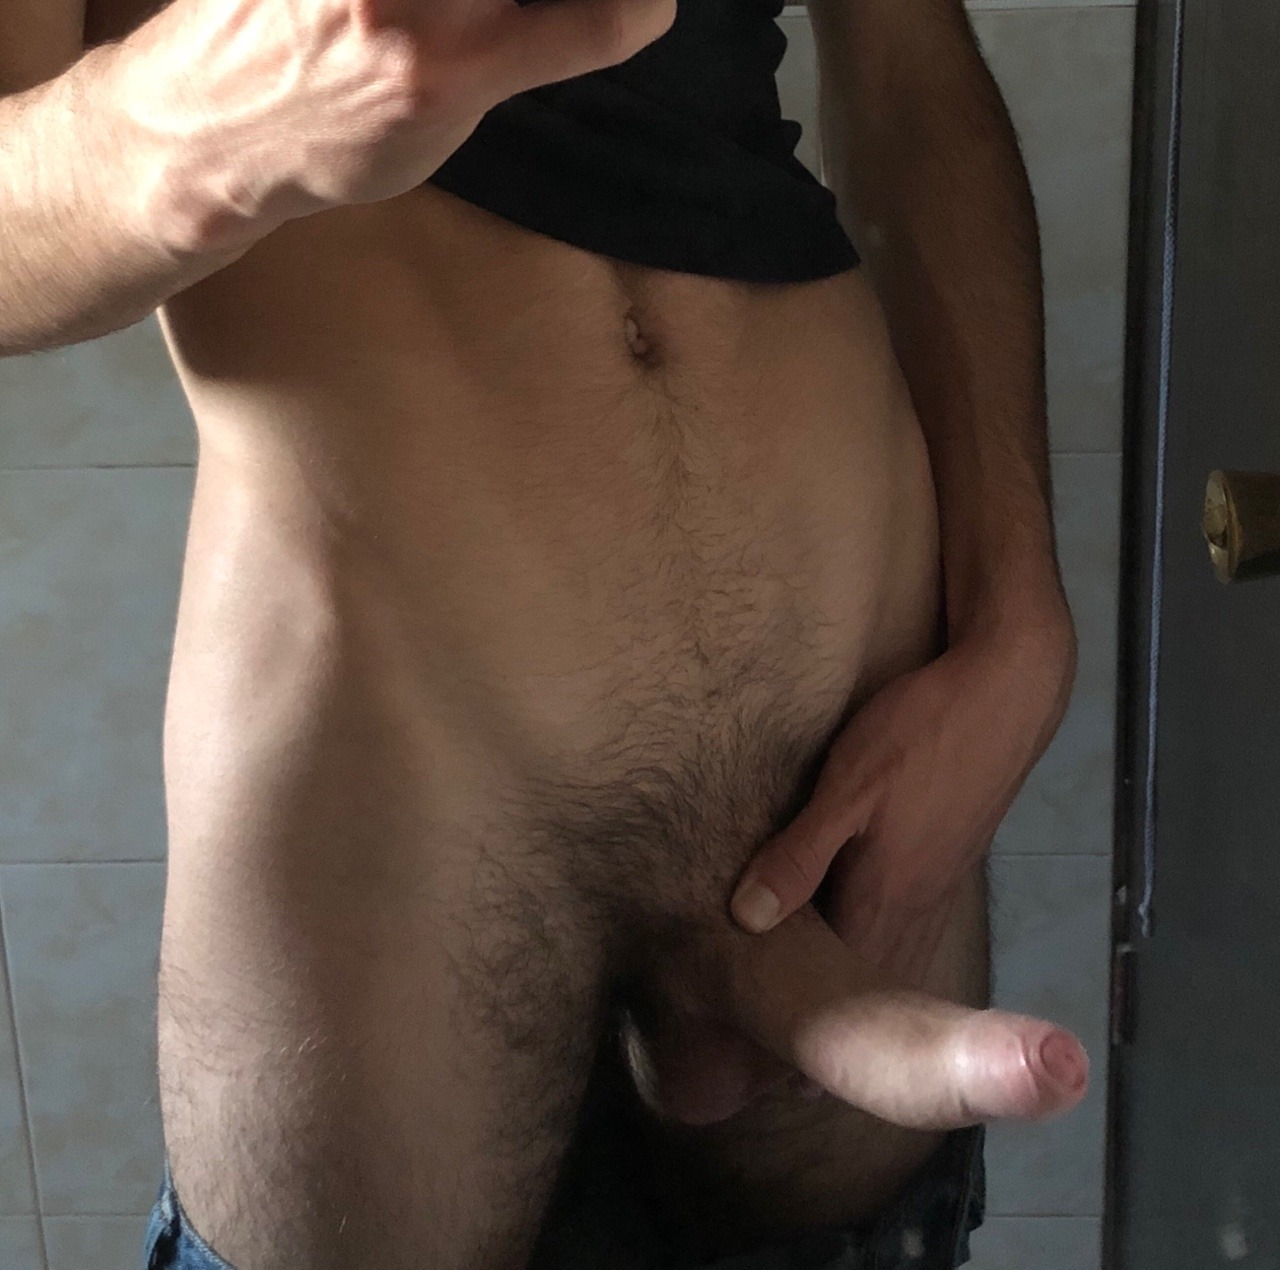 Boy with a hard uncut cock